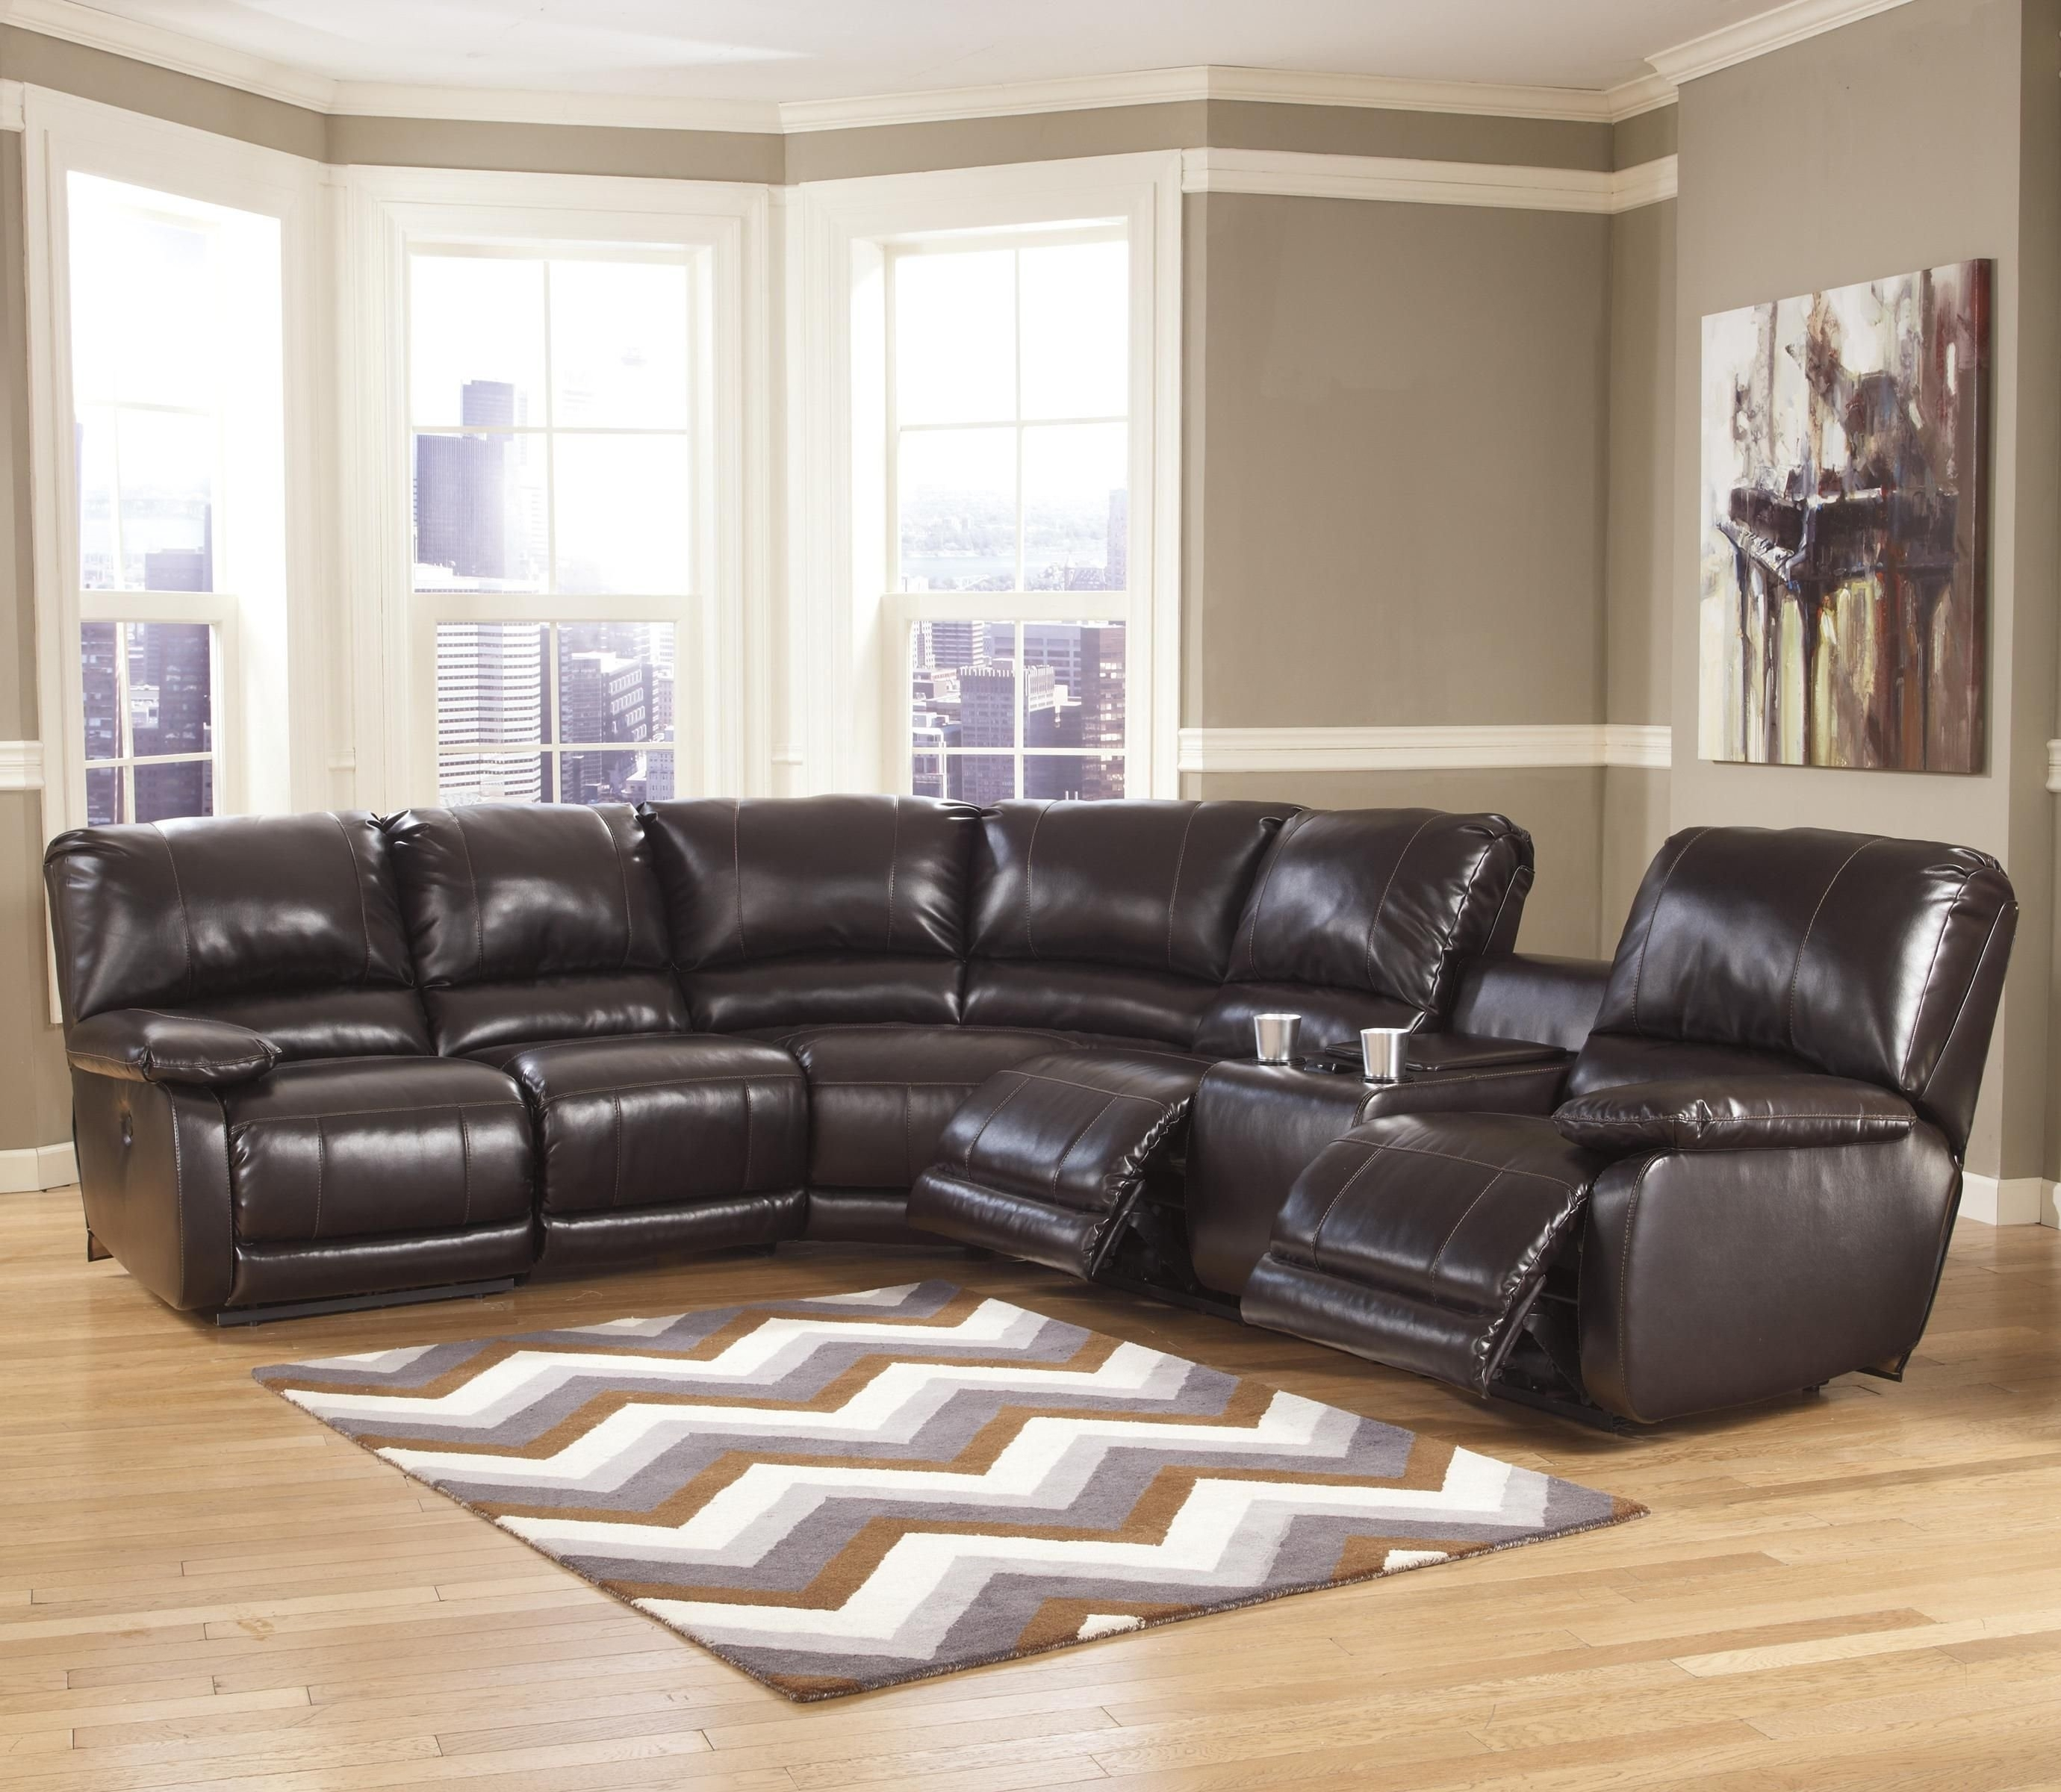 Fabulous 25 Power Reclining Sectional Sofa Favorite Throughout Calder Grey 6 Piece Manual Reclining Sectionals (View 7 of 25)